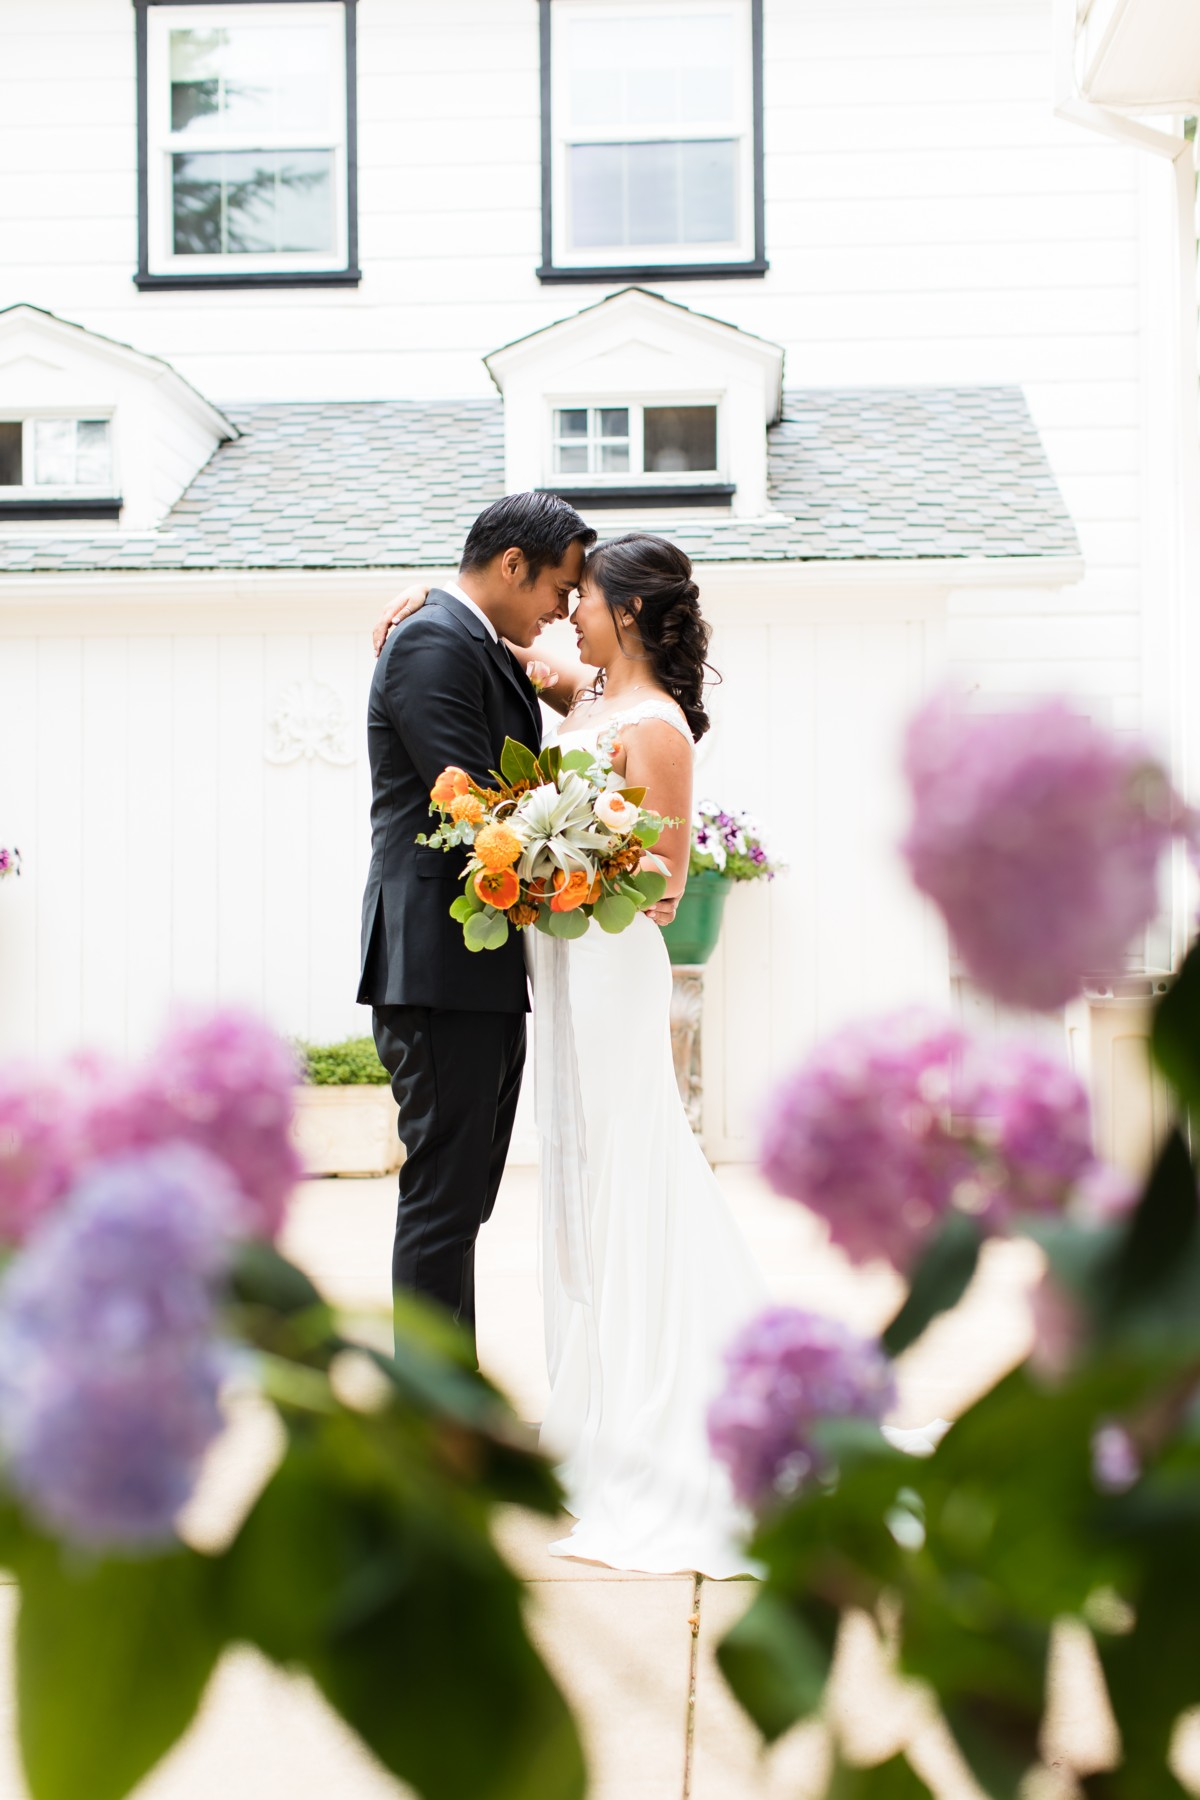 B&B Photography Lake Tahoe wedding - couple embracing